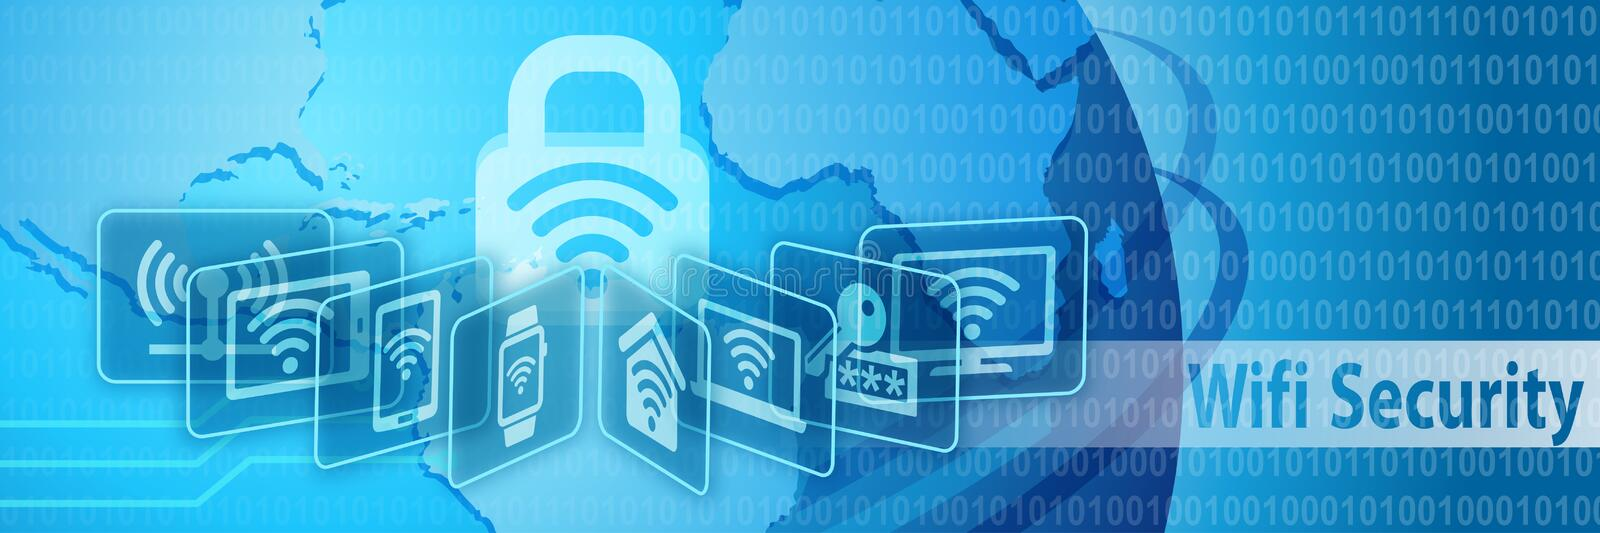 Wifi Security Protection Banner royalty free illustration